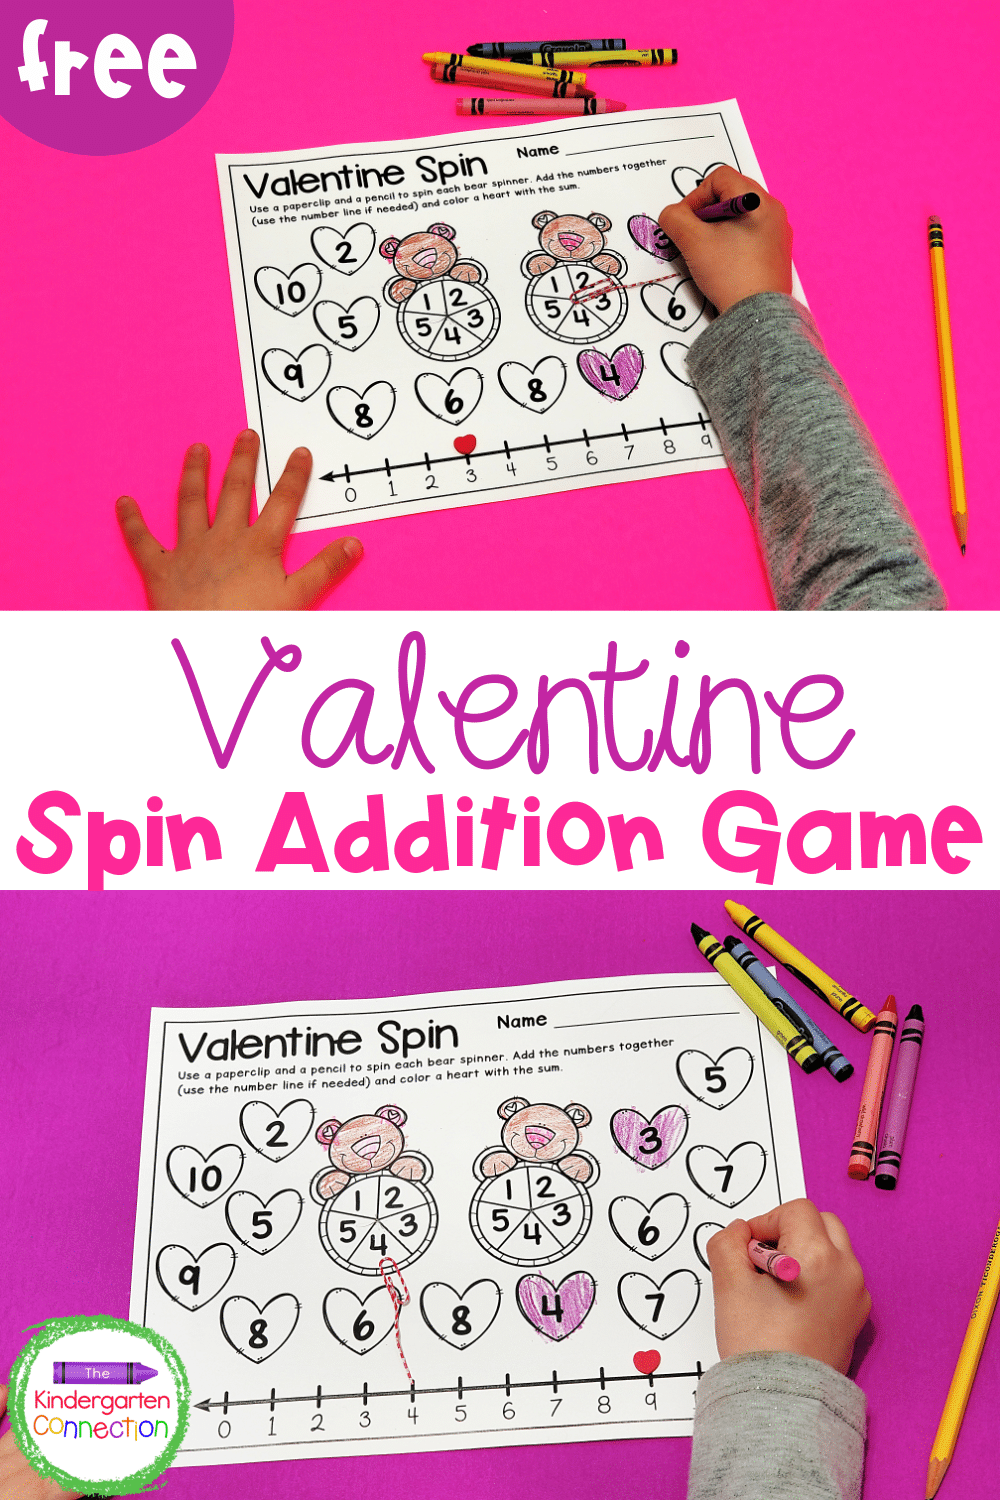 This FREE Valentine addition game for Kindergarten will add some hands-on learning fun to your math centers this February!